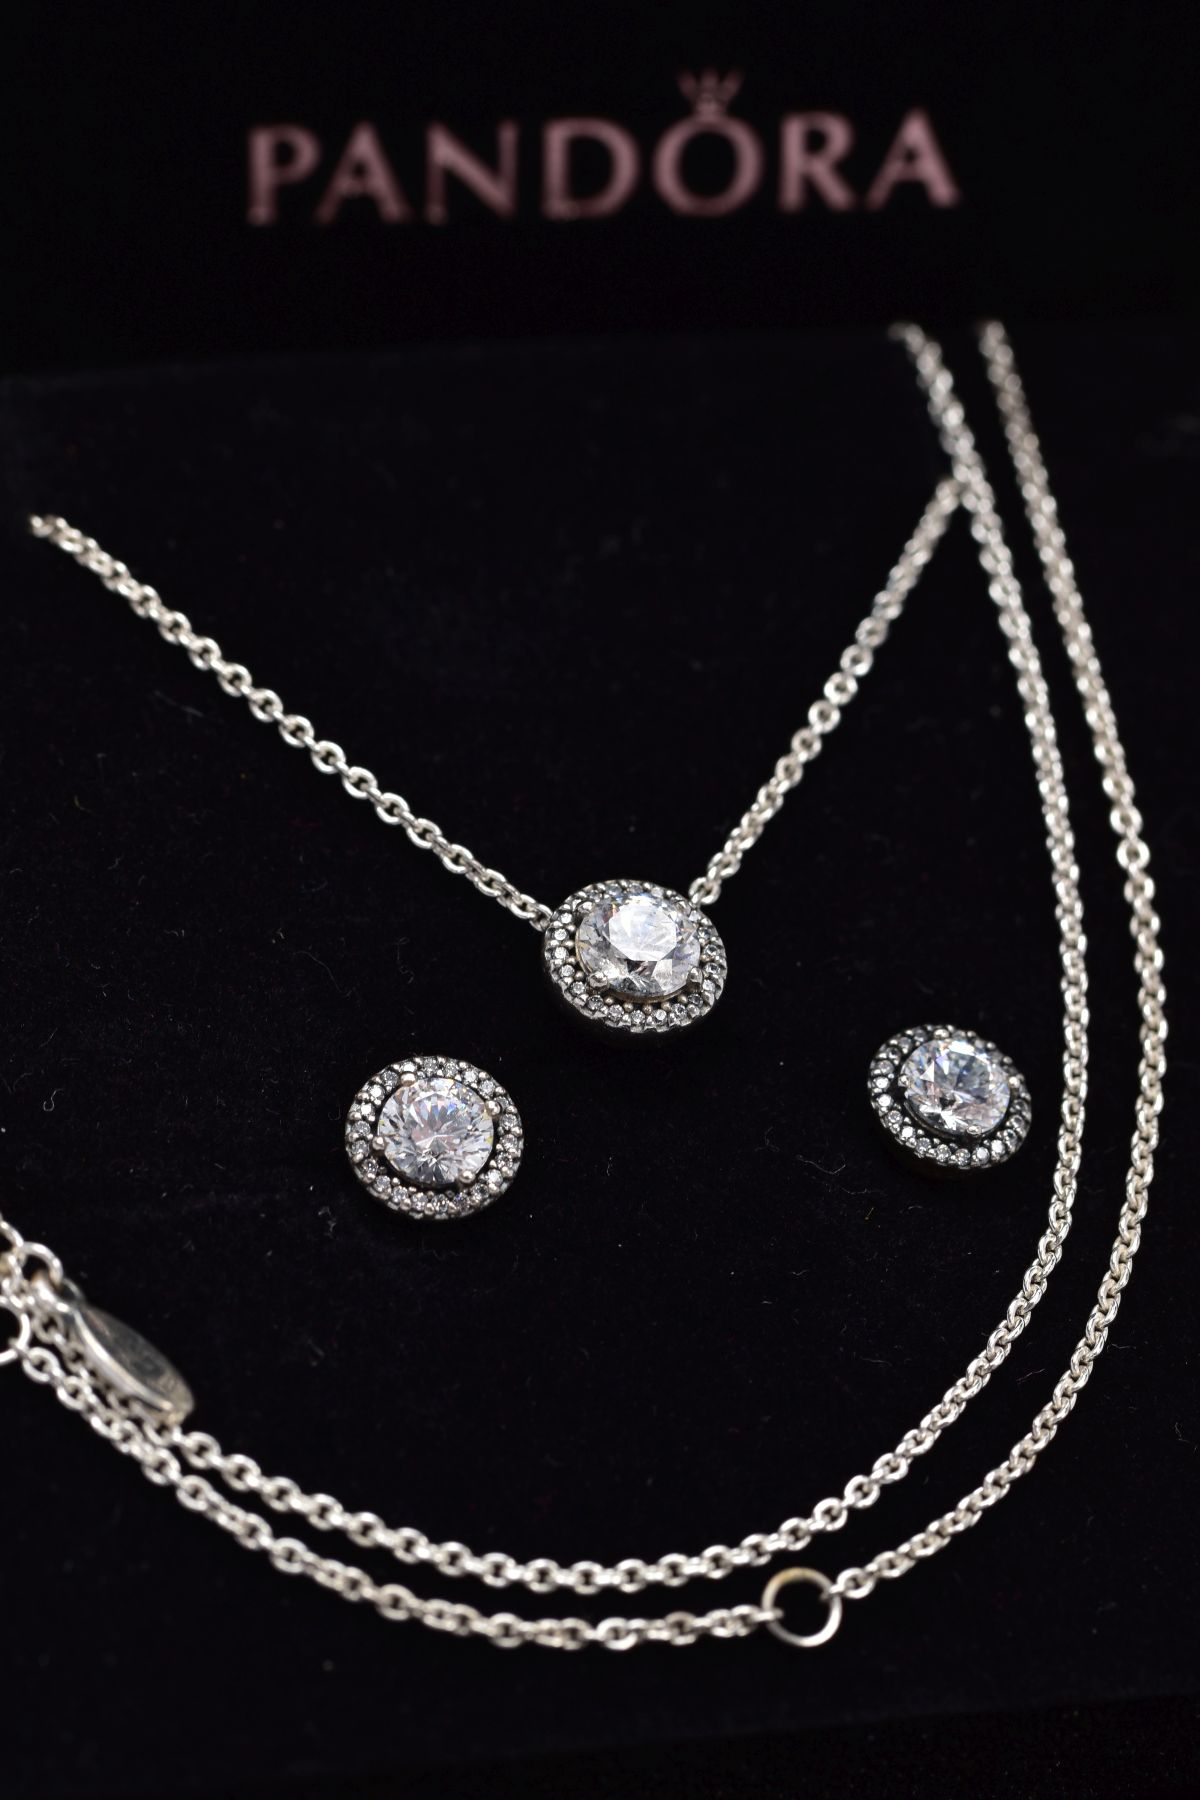 A PANDORA NECKLACE AND EARRING GIFT SET, the necklace designed with a cubic zirconia halo set - Image 3 of 3